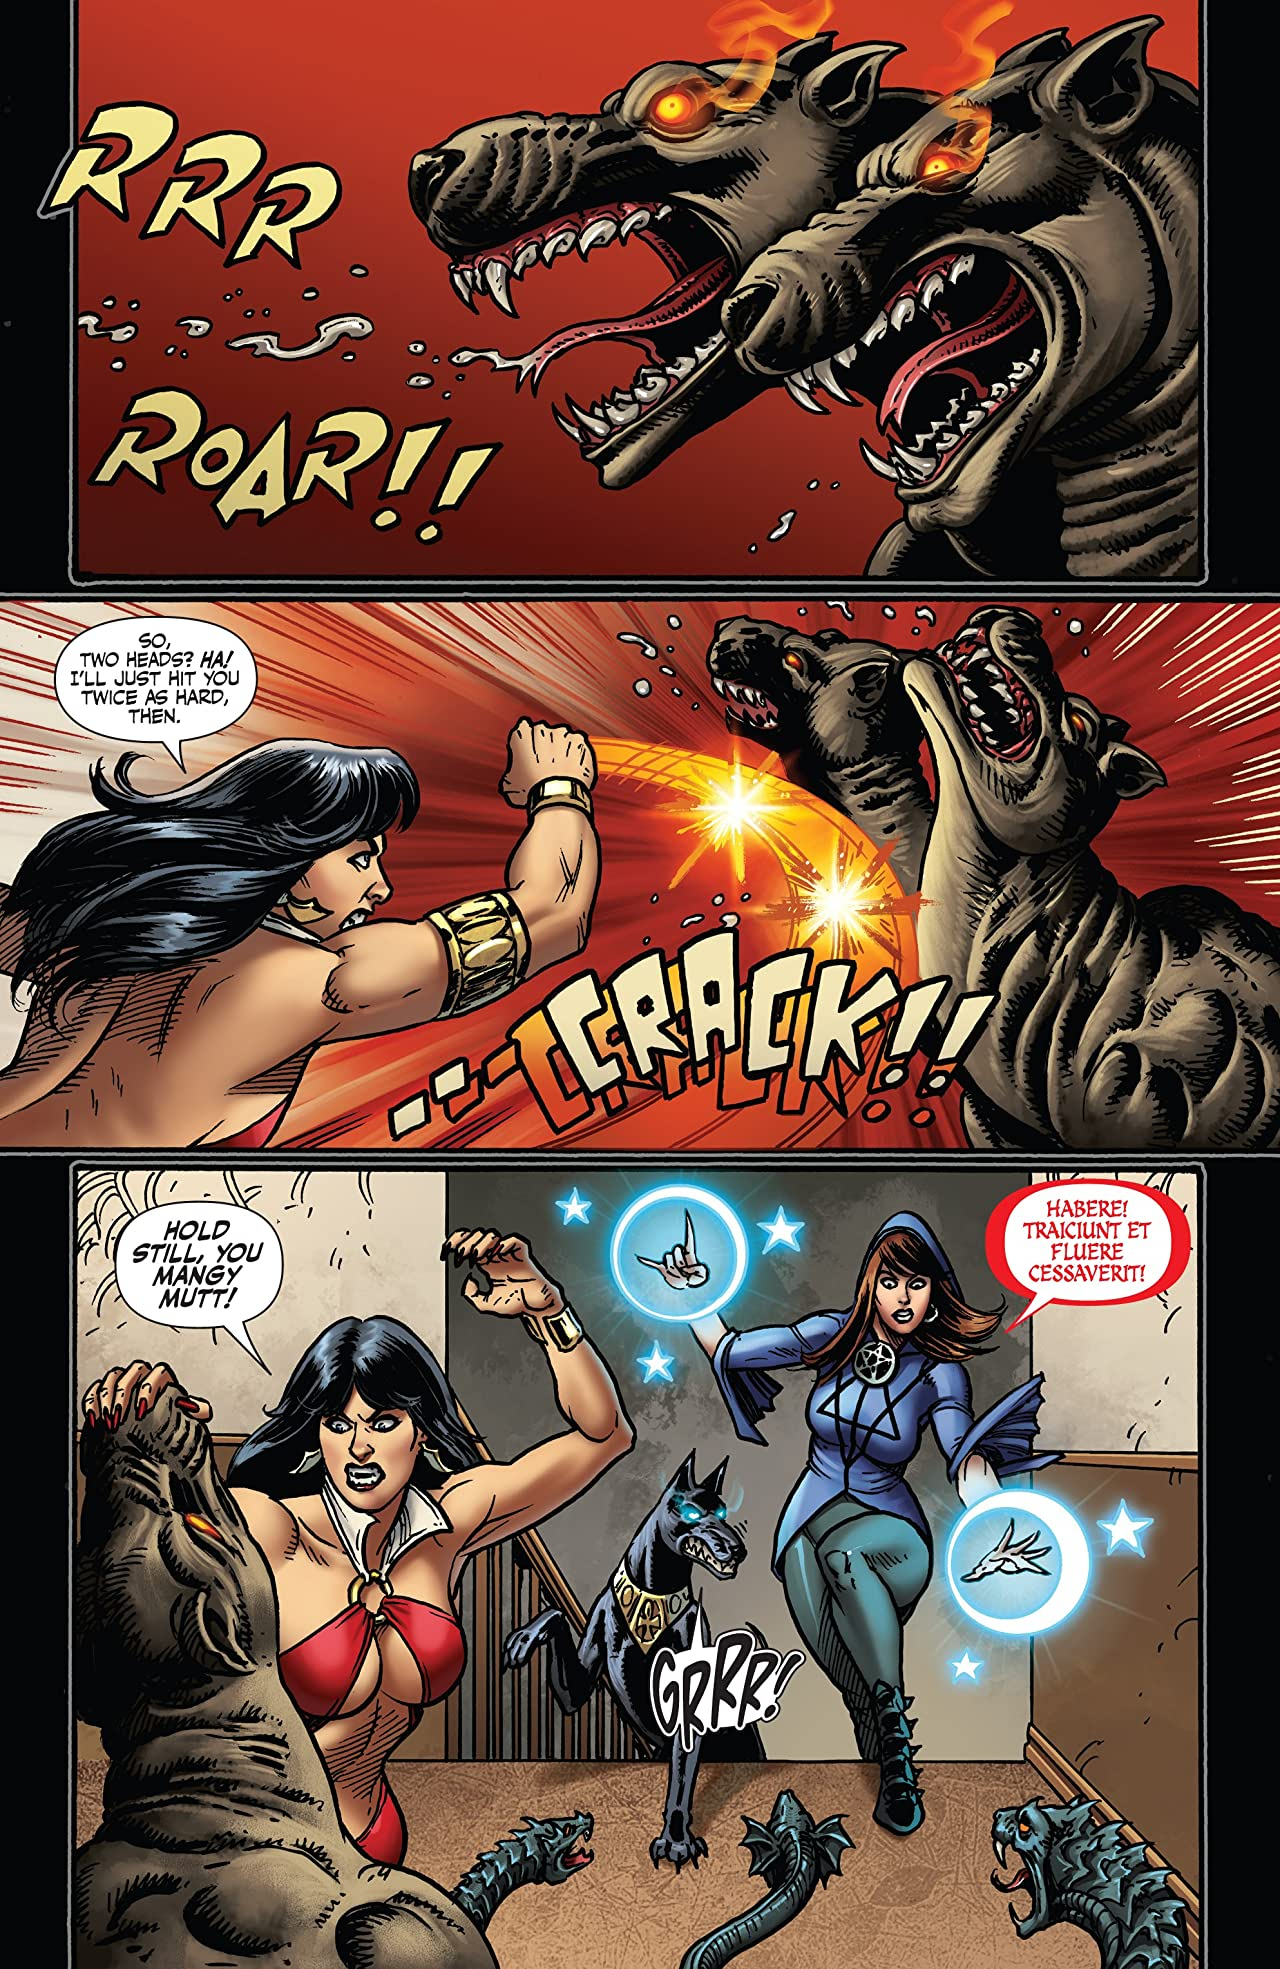 Vampirella: Roses For The Dead #4